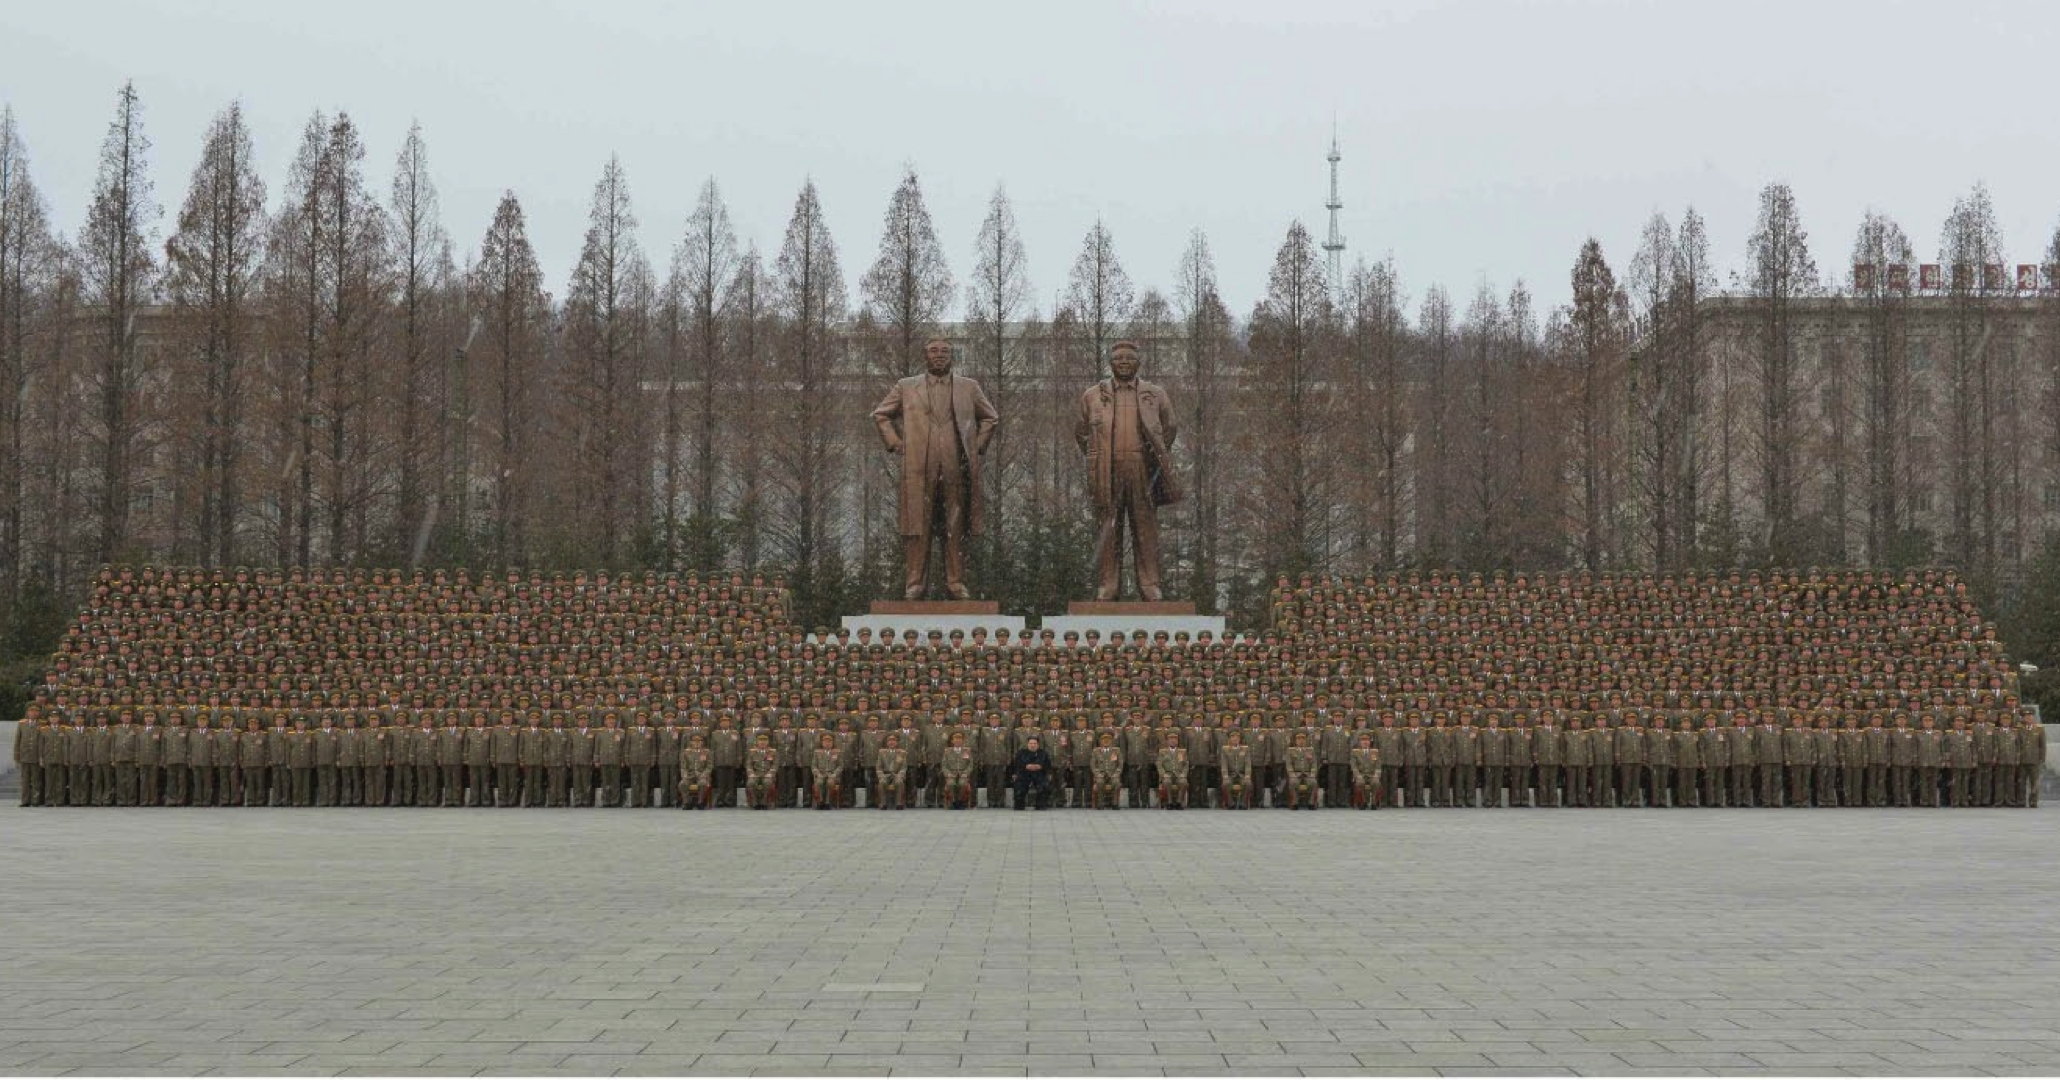 Kim Jong Un poses for a commemorative photo with senior officers of the Ministry of the People's Armed Forces, KPA General Staff and KPA General Political Department, in front of the statues of his father and grandfather at the MPAF complex (Photo: Rodong Sinmun/KCNA).